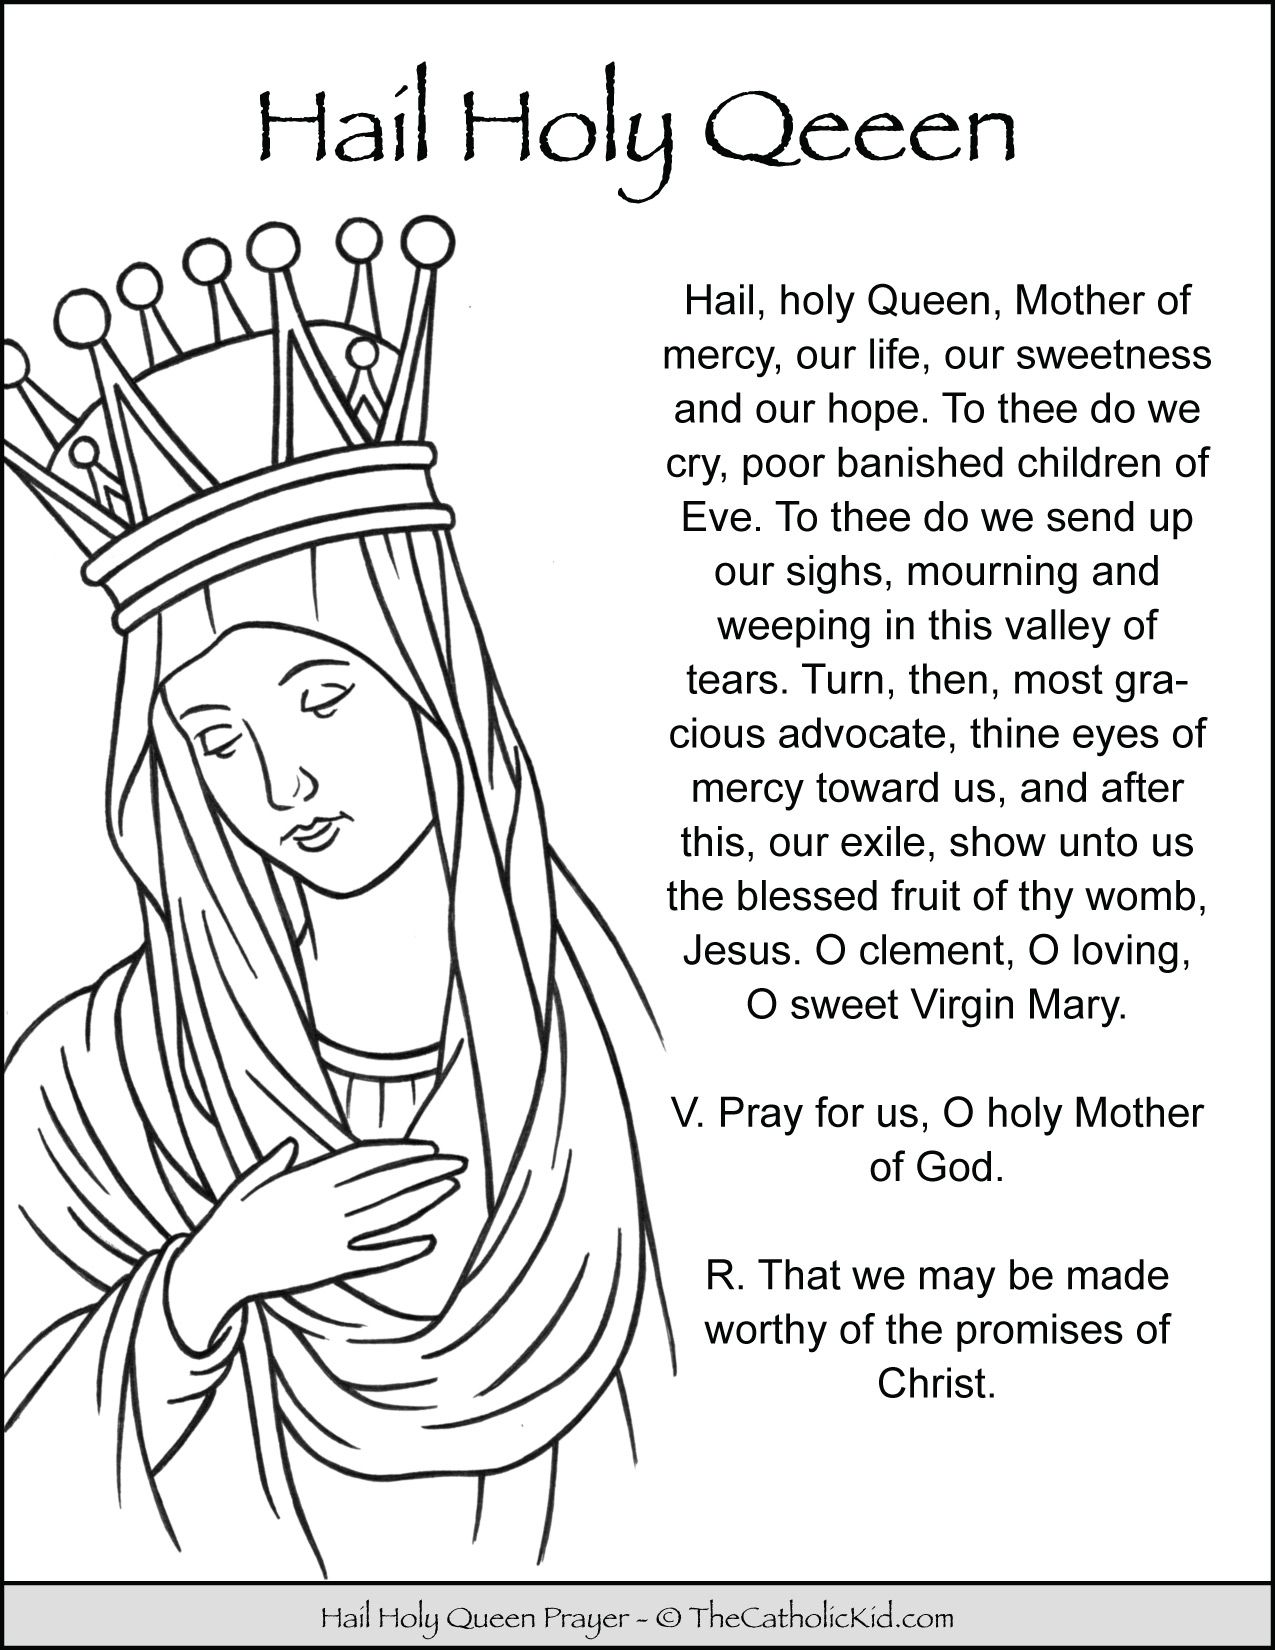 Hail Holy Queen Prayer Coloring Page Thecatholickid Com Hail Holy Queen Prayer Hail Holy Queen Prayers For Children